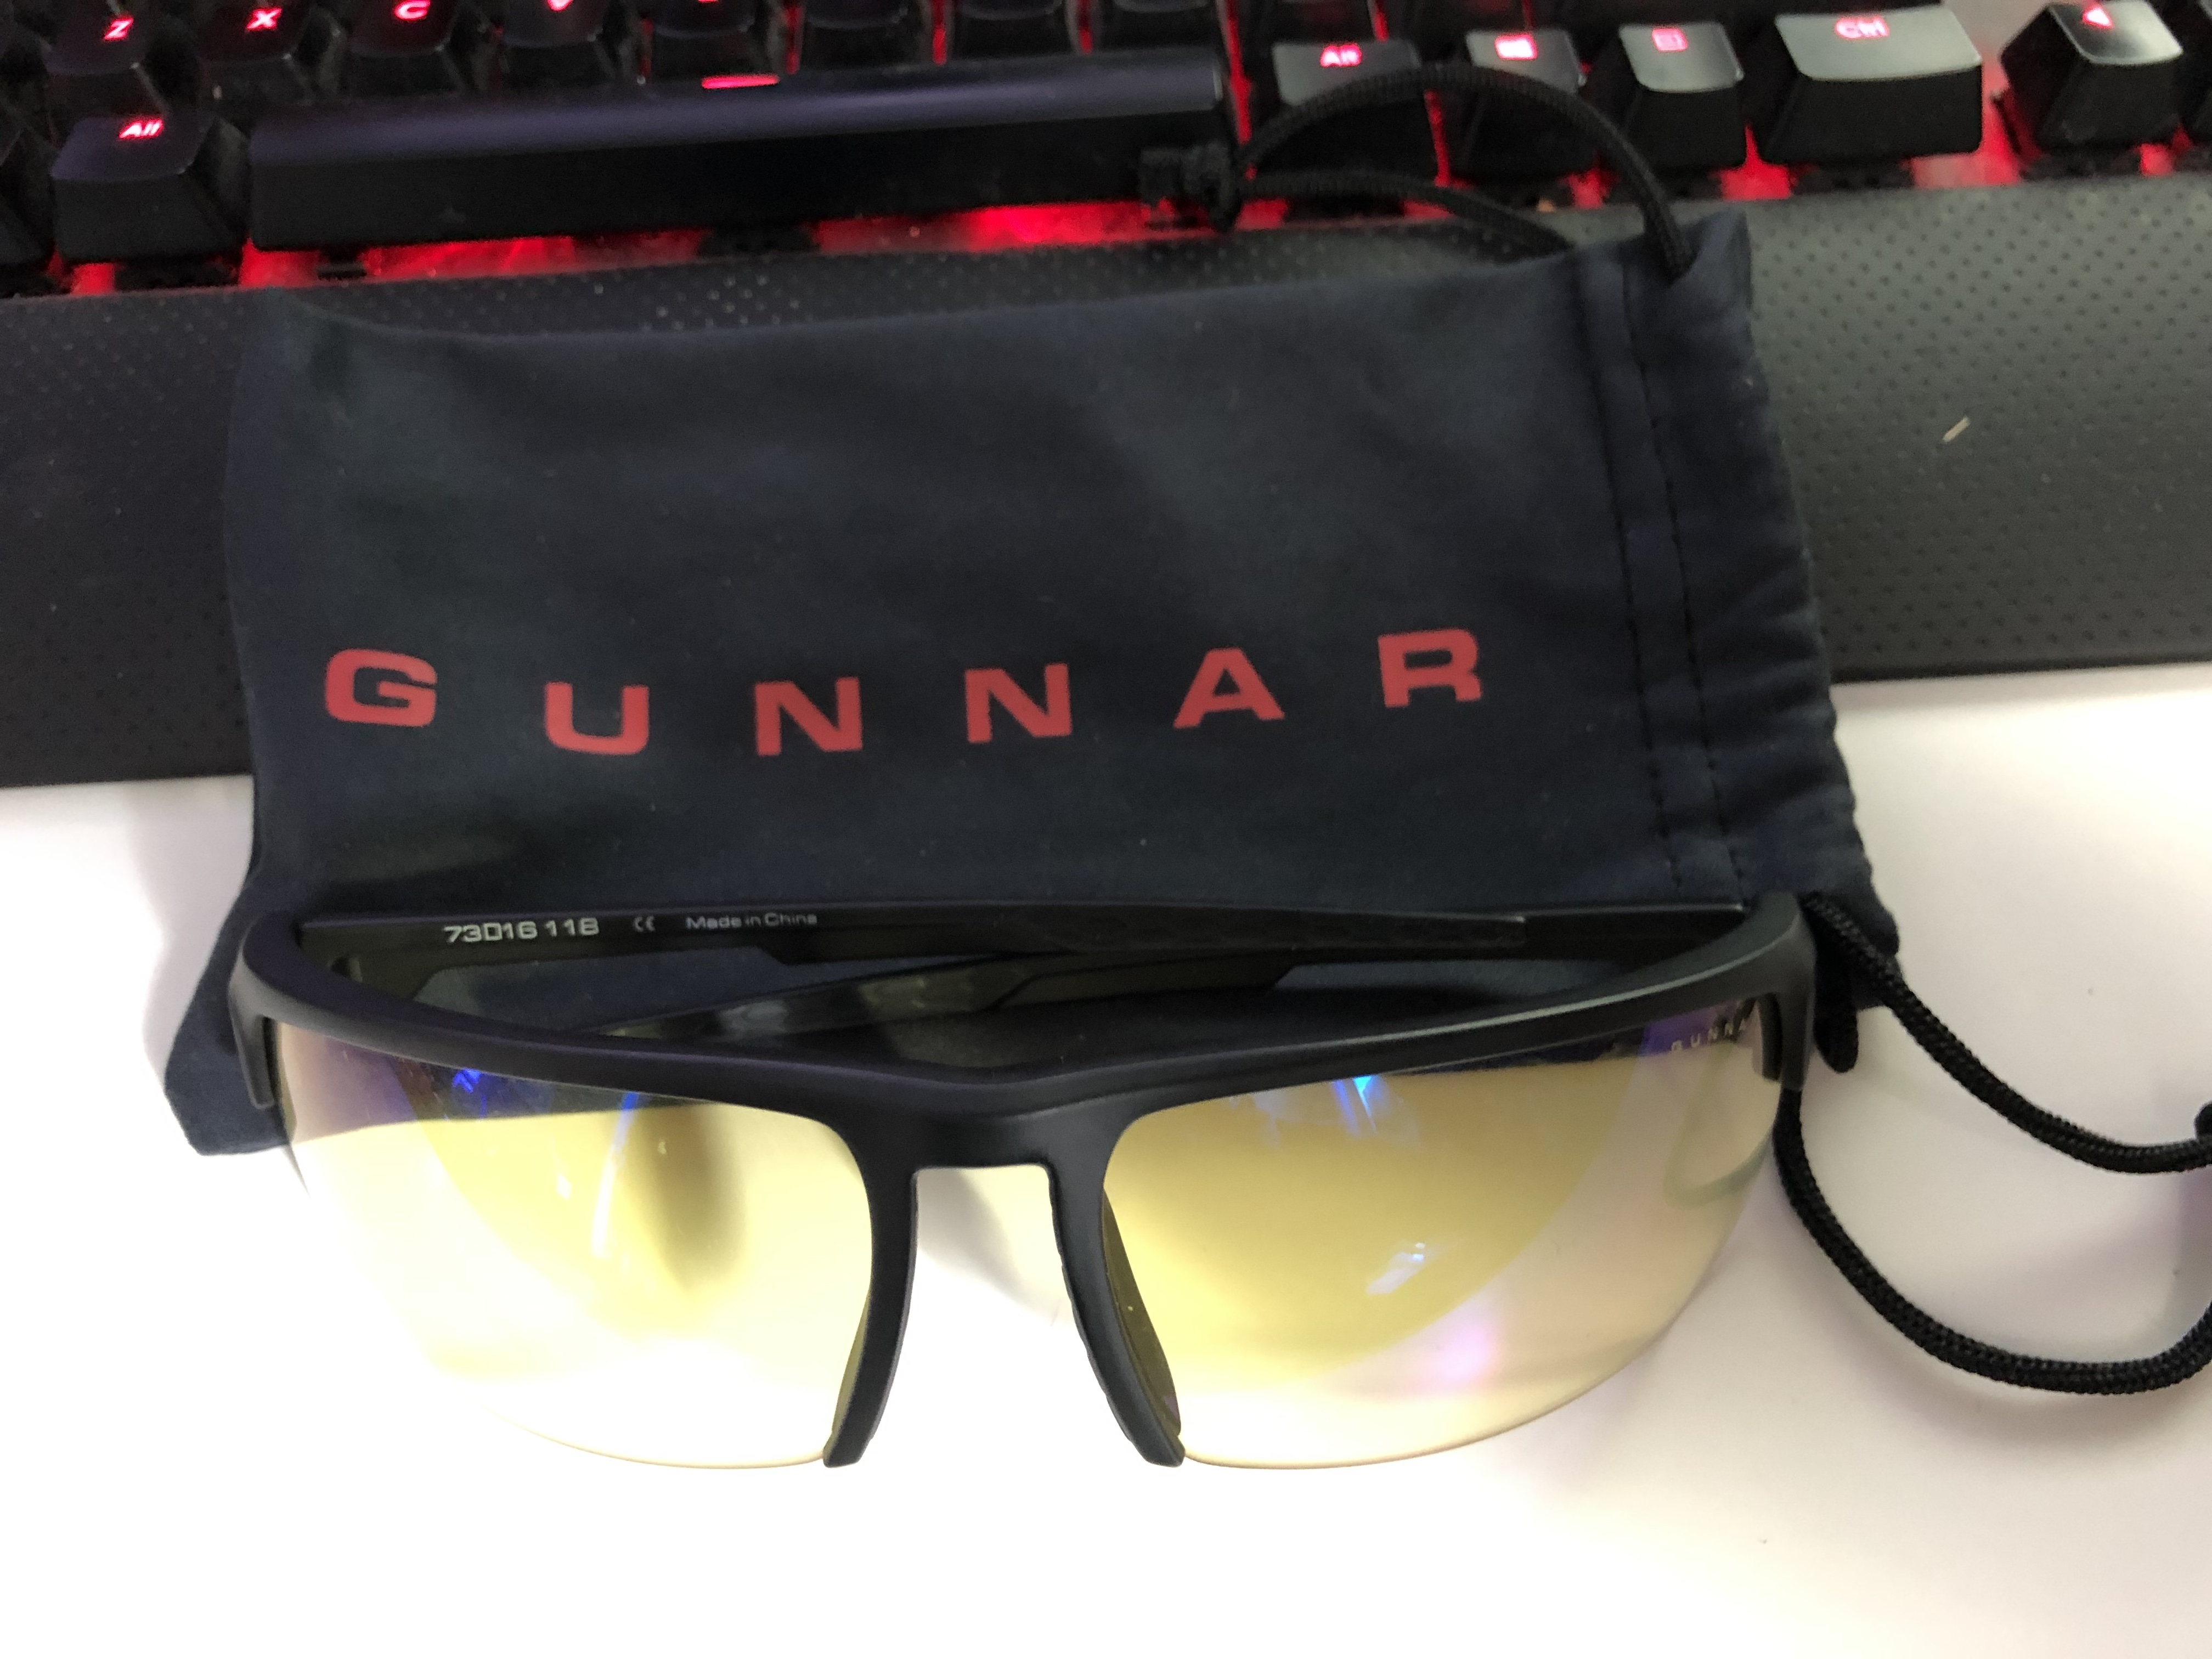 c0589b0371 Hardware Review - Torpedoes Inbound! Torpedo Gaming Glasses By ...